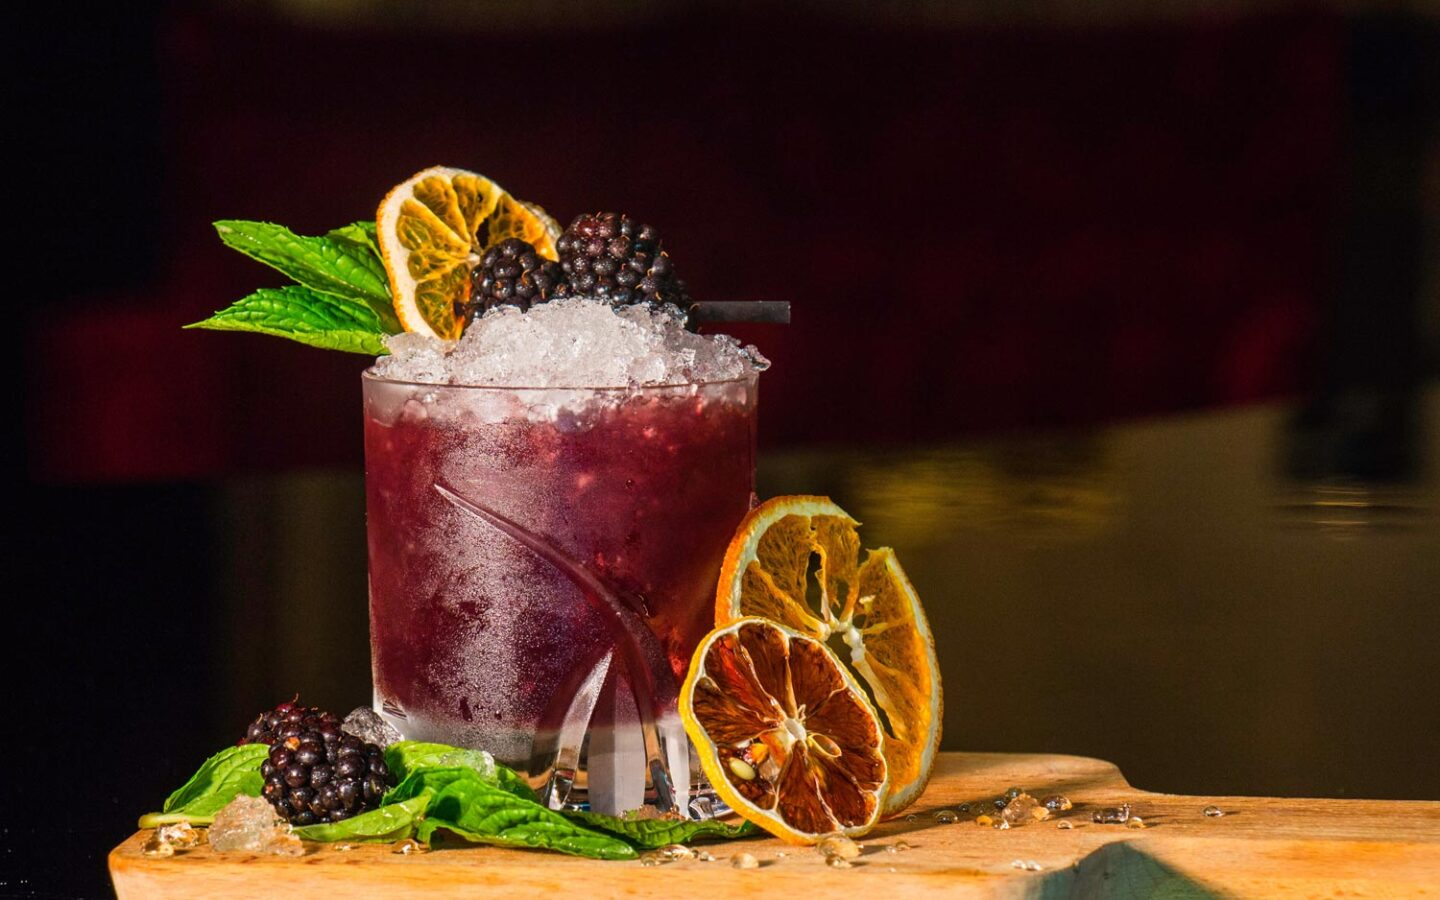 cocktail set on wooden cutting board with blackberries and oranges as garnish